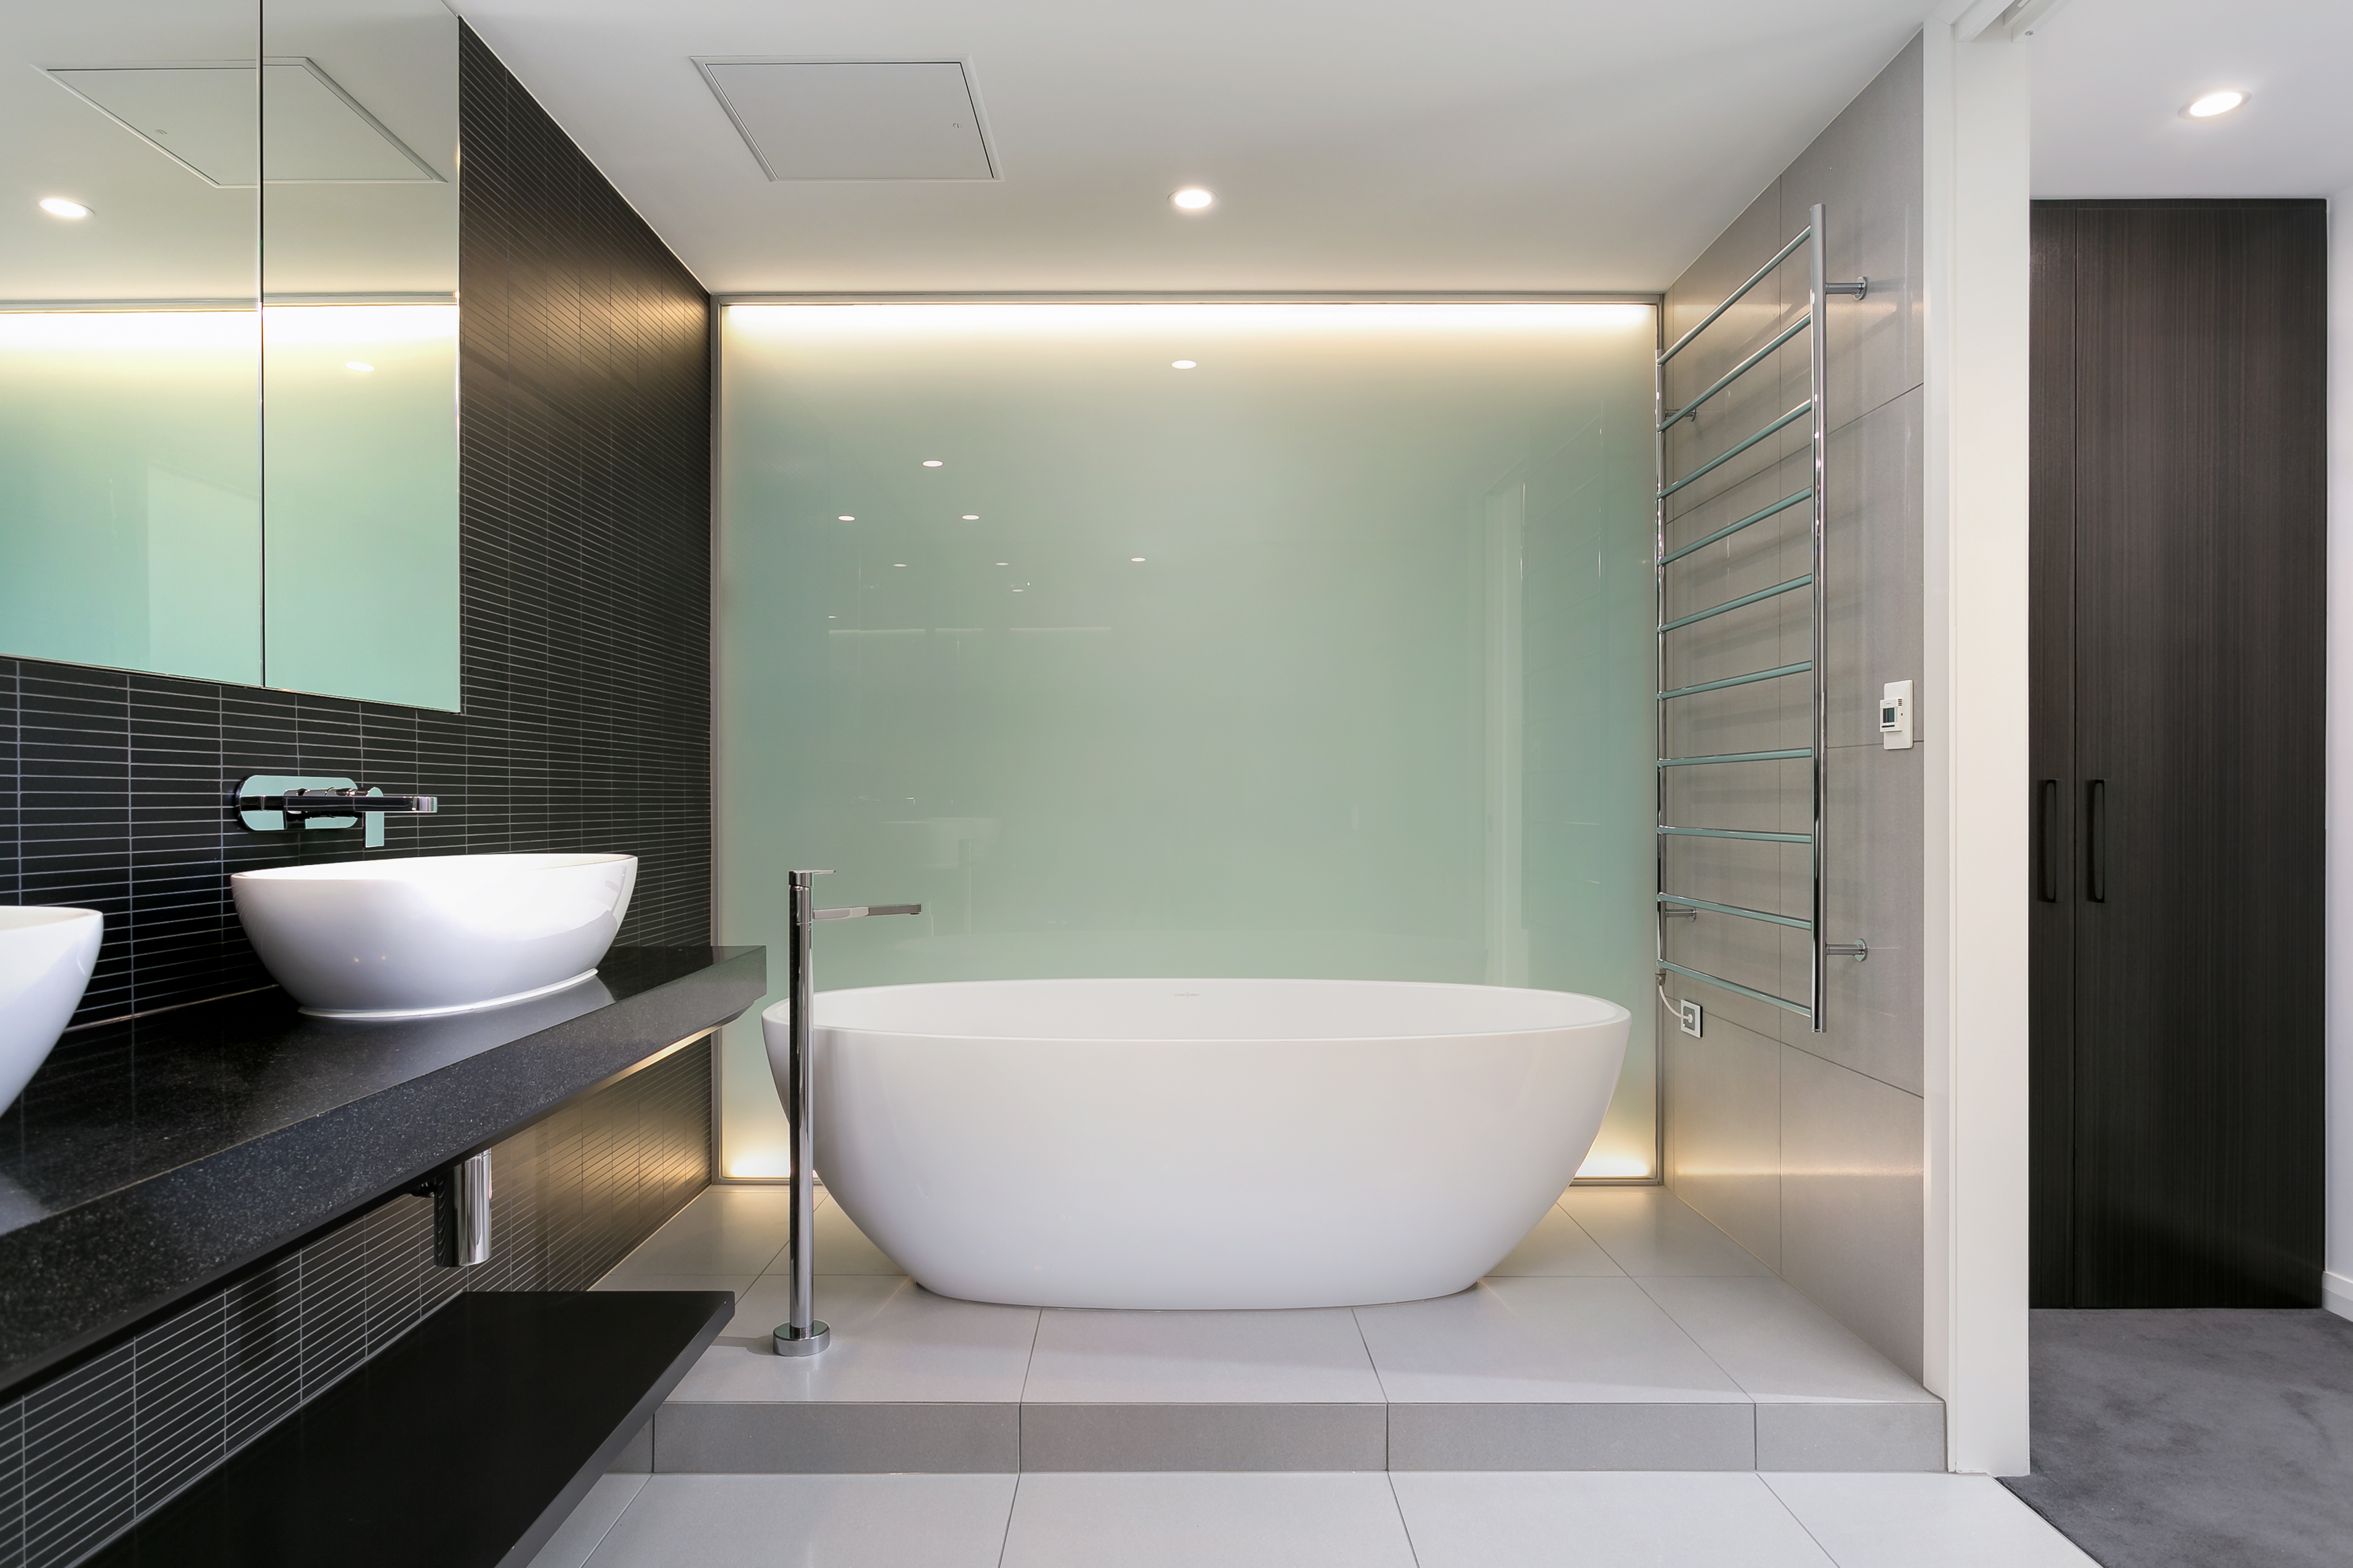 The bathtub stands in a private cove centered on a backlit smoked glass wall, making an ethereal glow in the space.